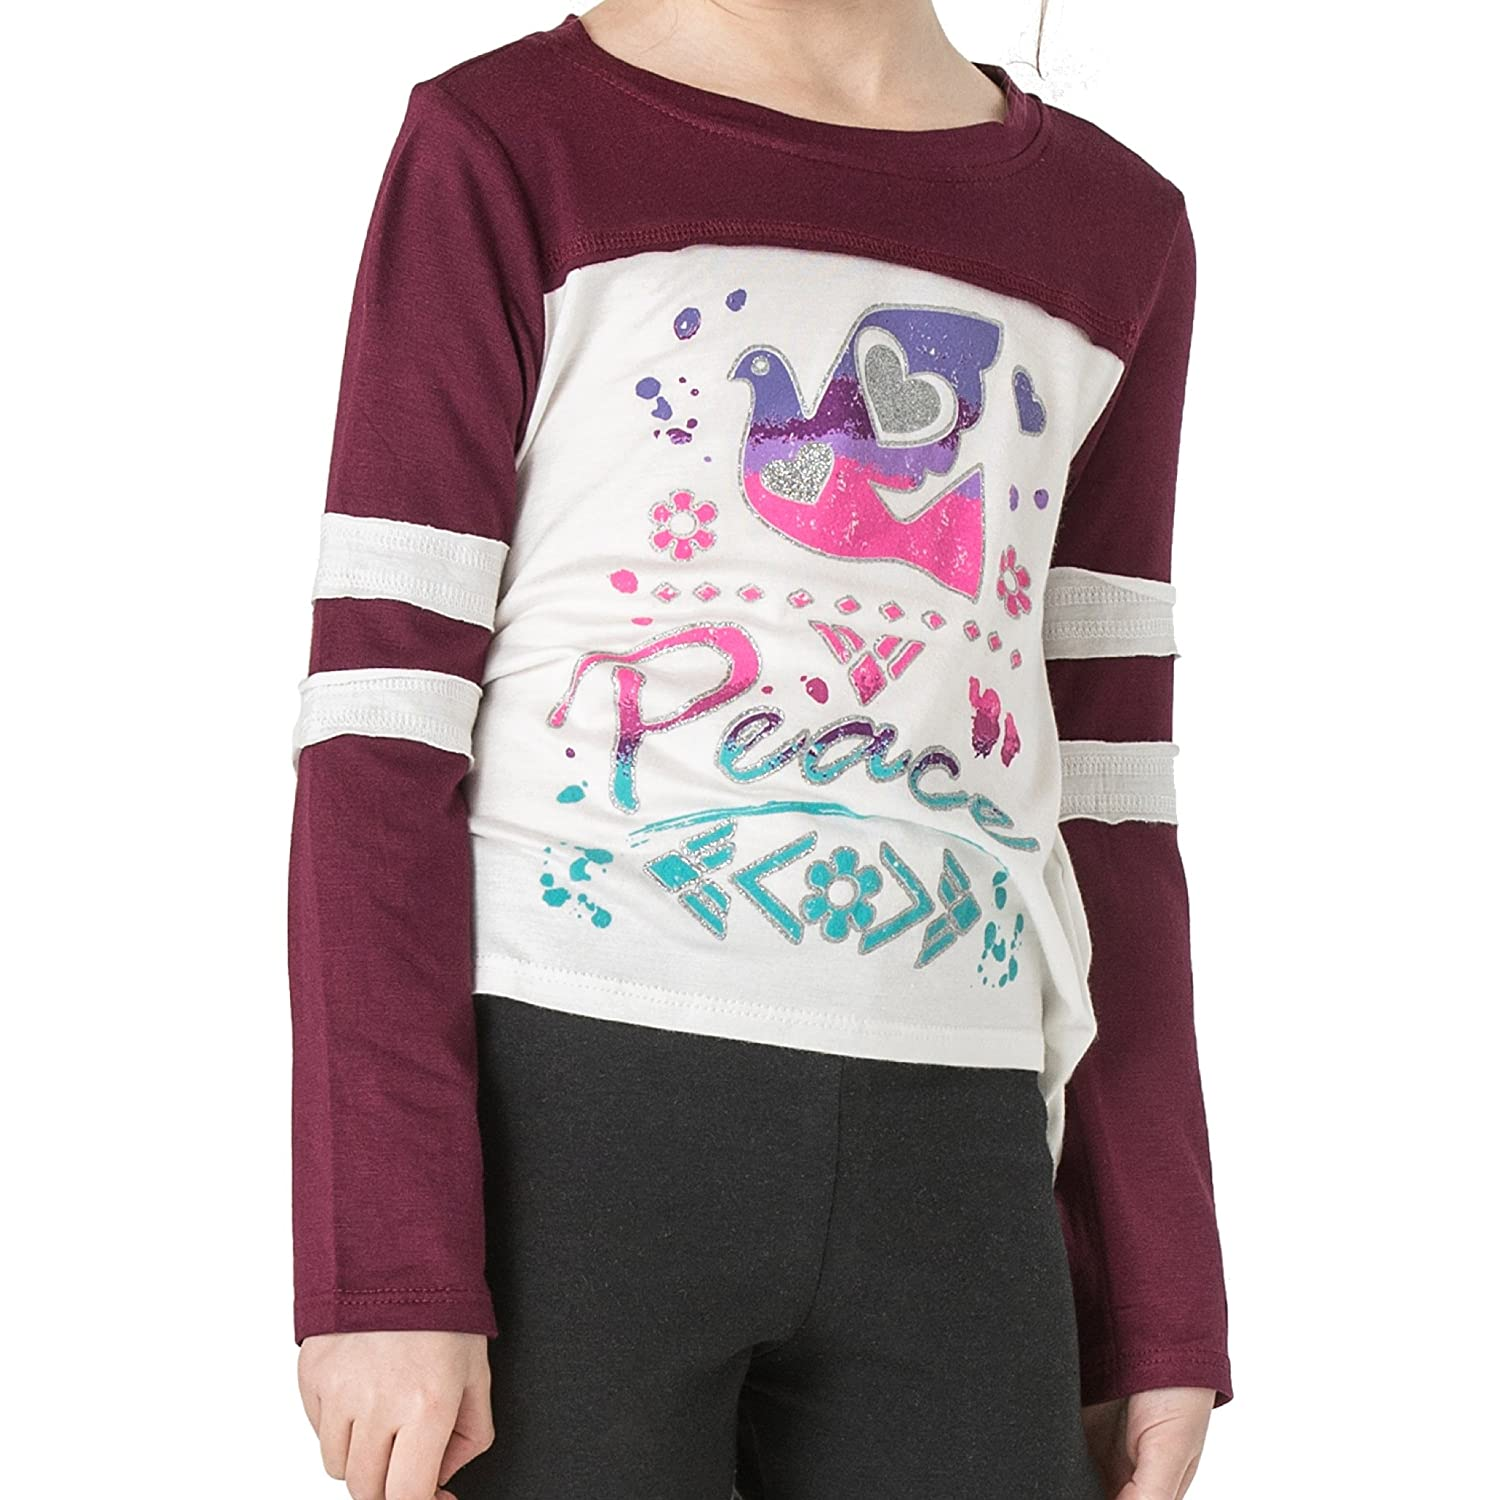 FASHION X FAITH Girls Long Sleeve Shirts Jessica Silky Soft Jersey Top Tees Clothes Made in USA